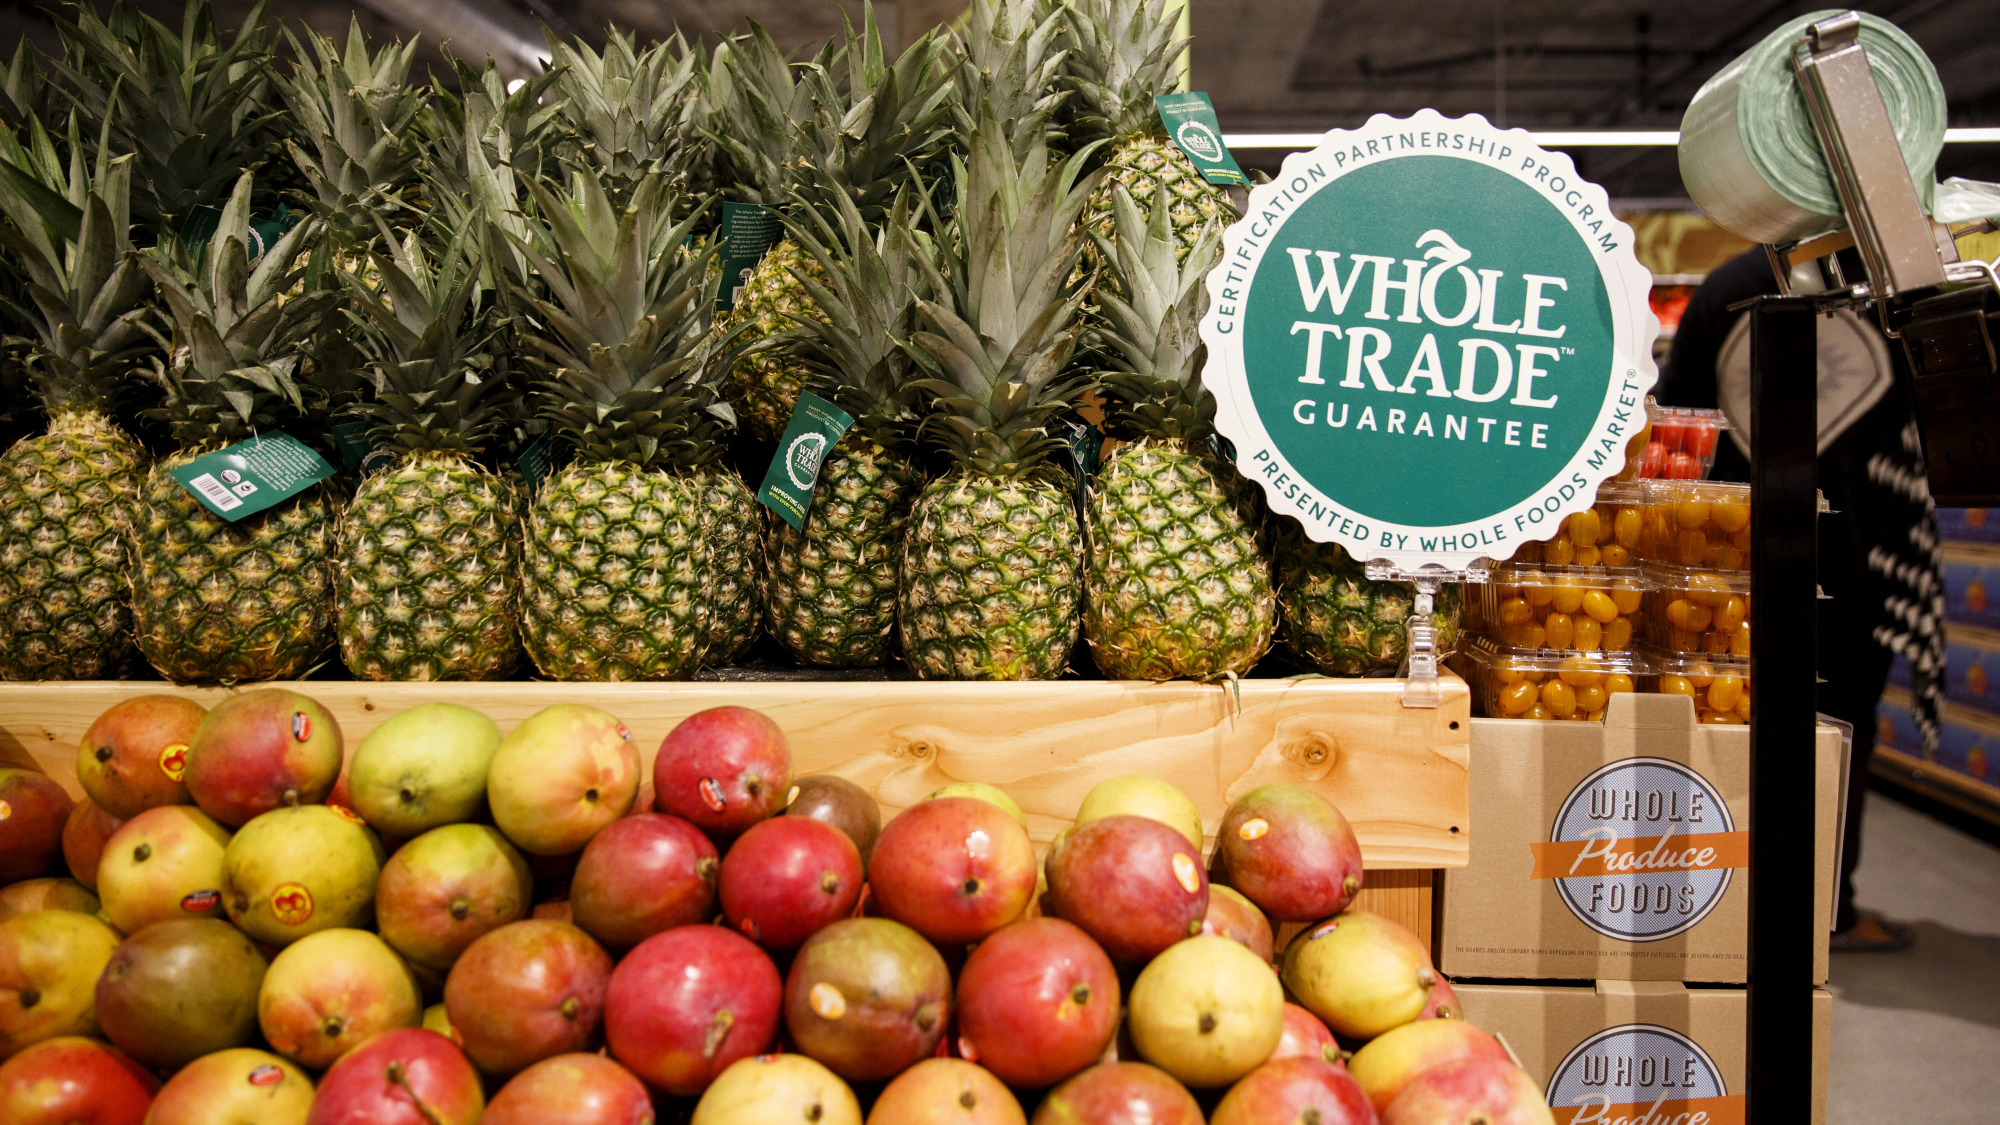 Amazon to Acquire Whole Foods for $13.7 Billion - Bloomberg